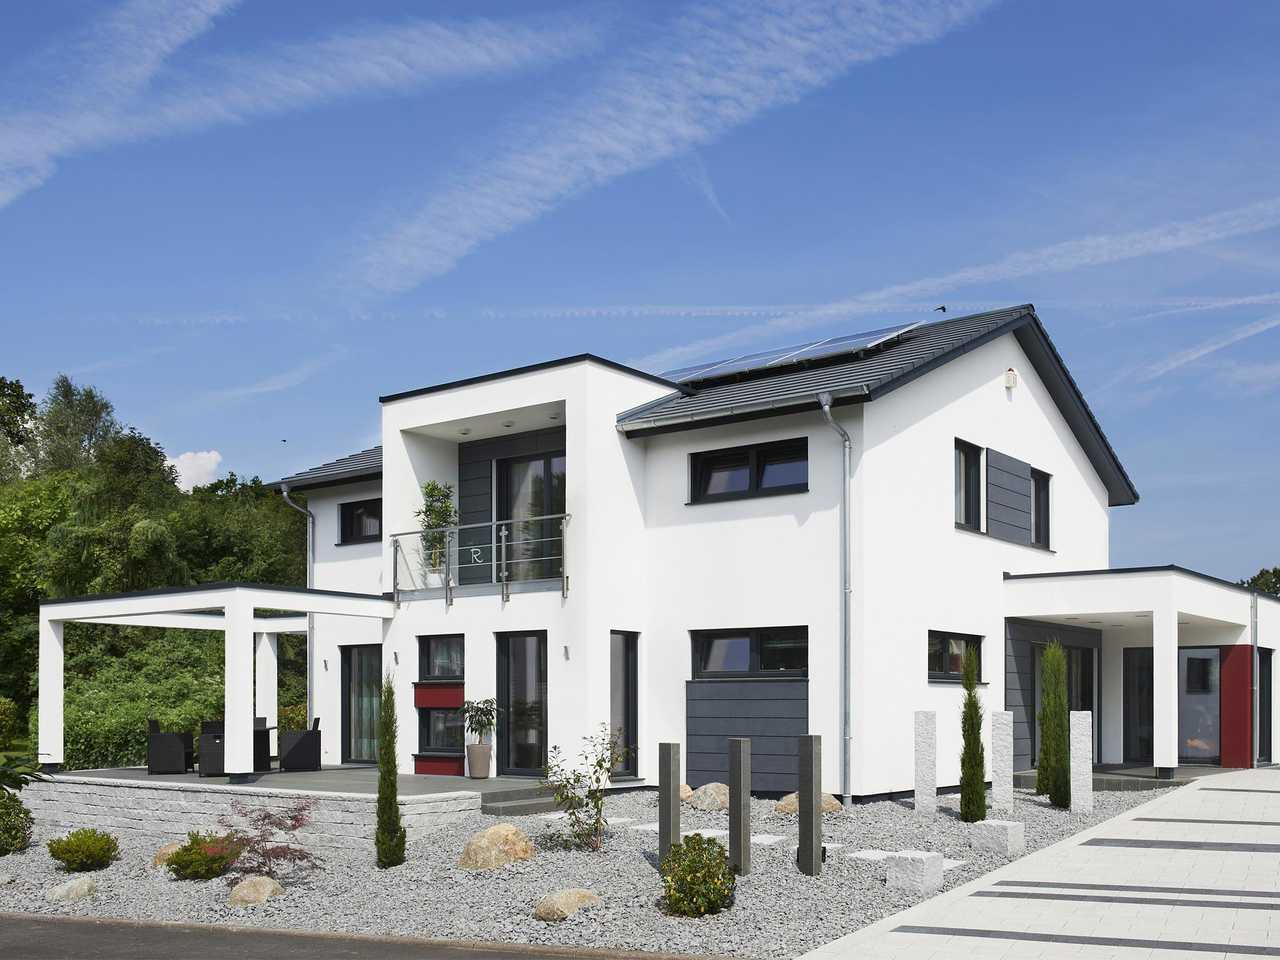 Musterhaus Innovation R Bad Vilbel Ansicht 2